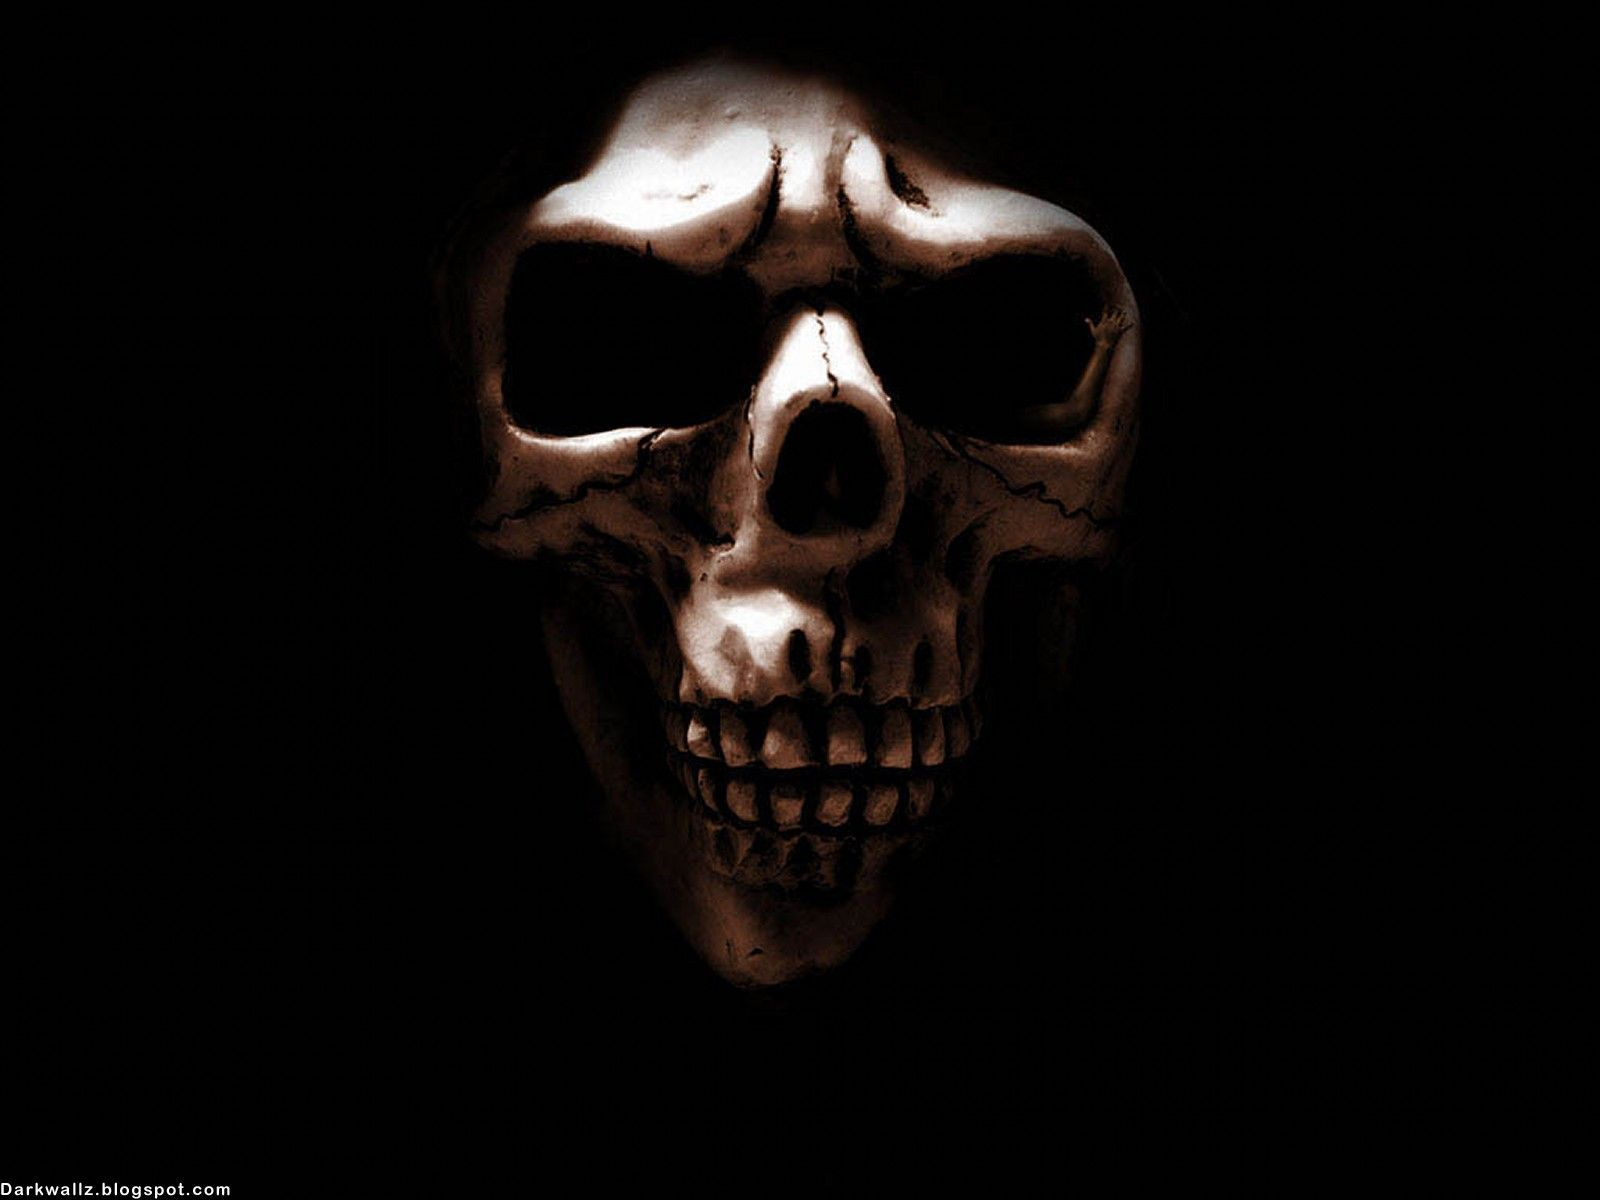 "1600x1200 59 entries in Skull Wallpapers Free Download group"">"